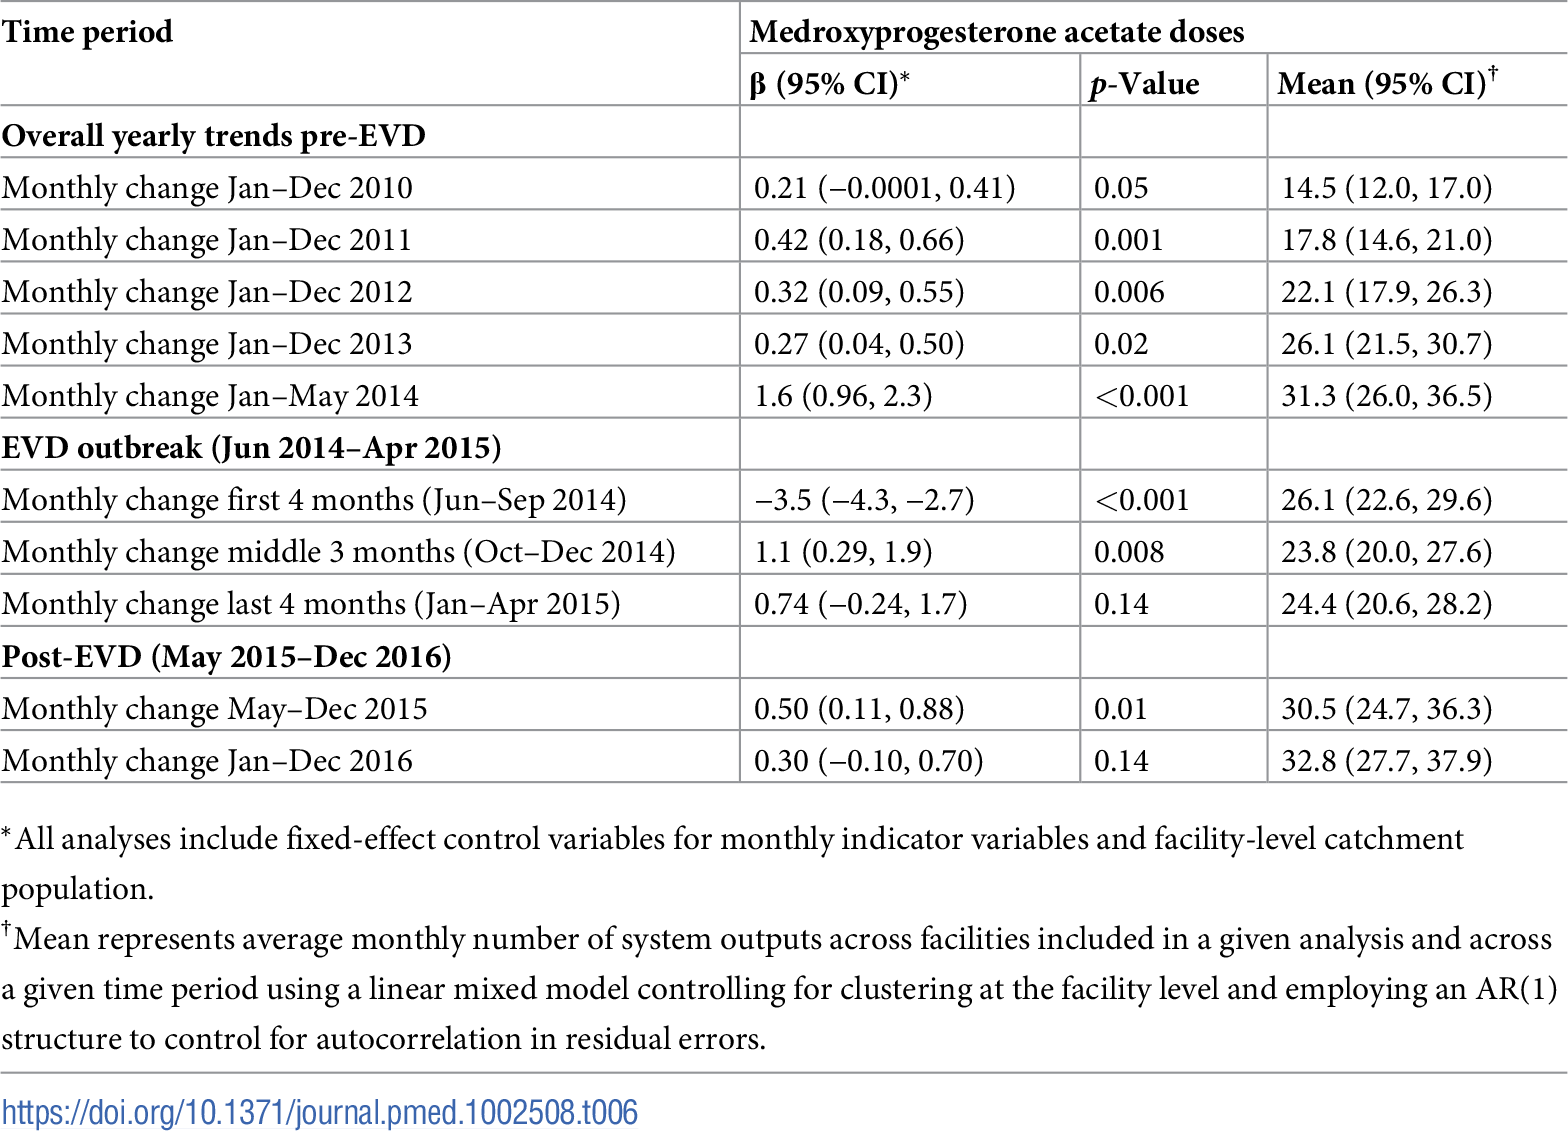 Parameter estimates and system losses due to Ebola virus disease (EVD) outbreak (June 2014–April 2015) for medroxyprogesterone acetate doses across a census of clinics providing services in Liberia excluding Montserrado County, 2010–2016.